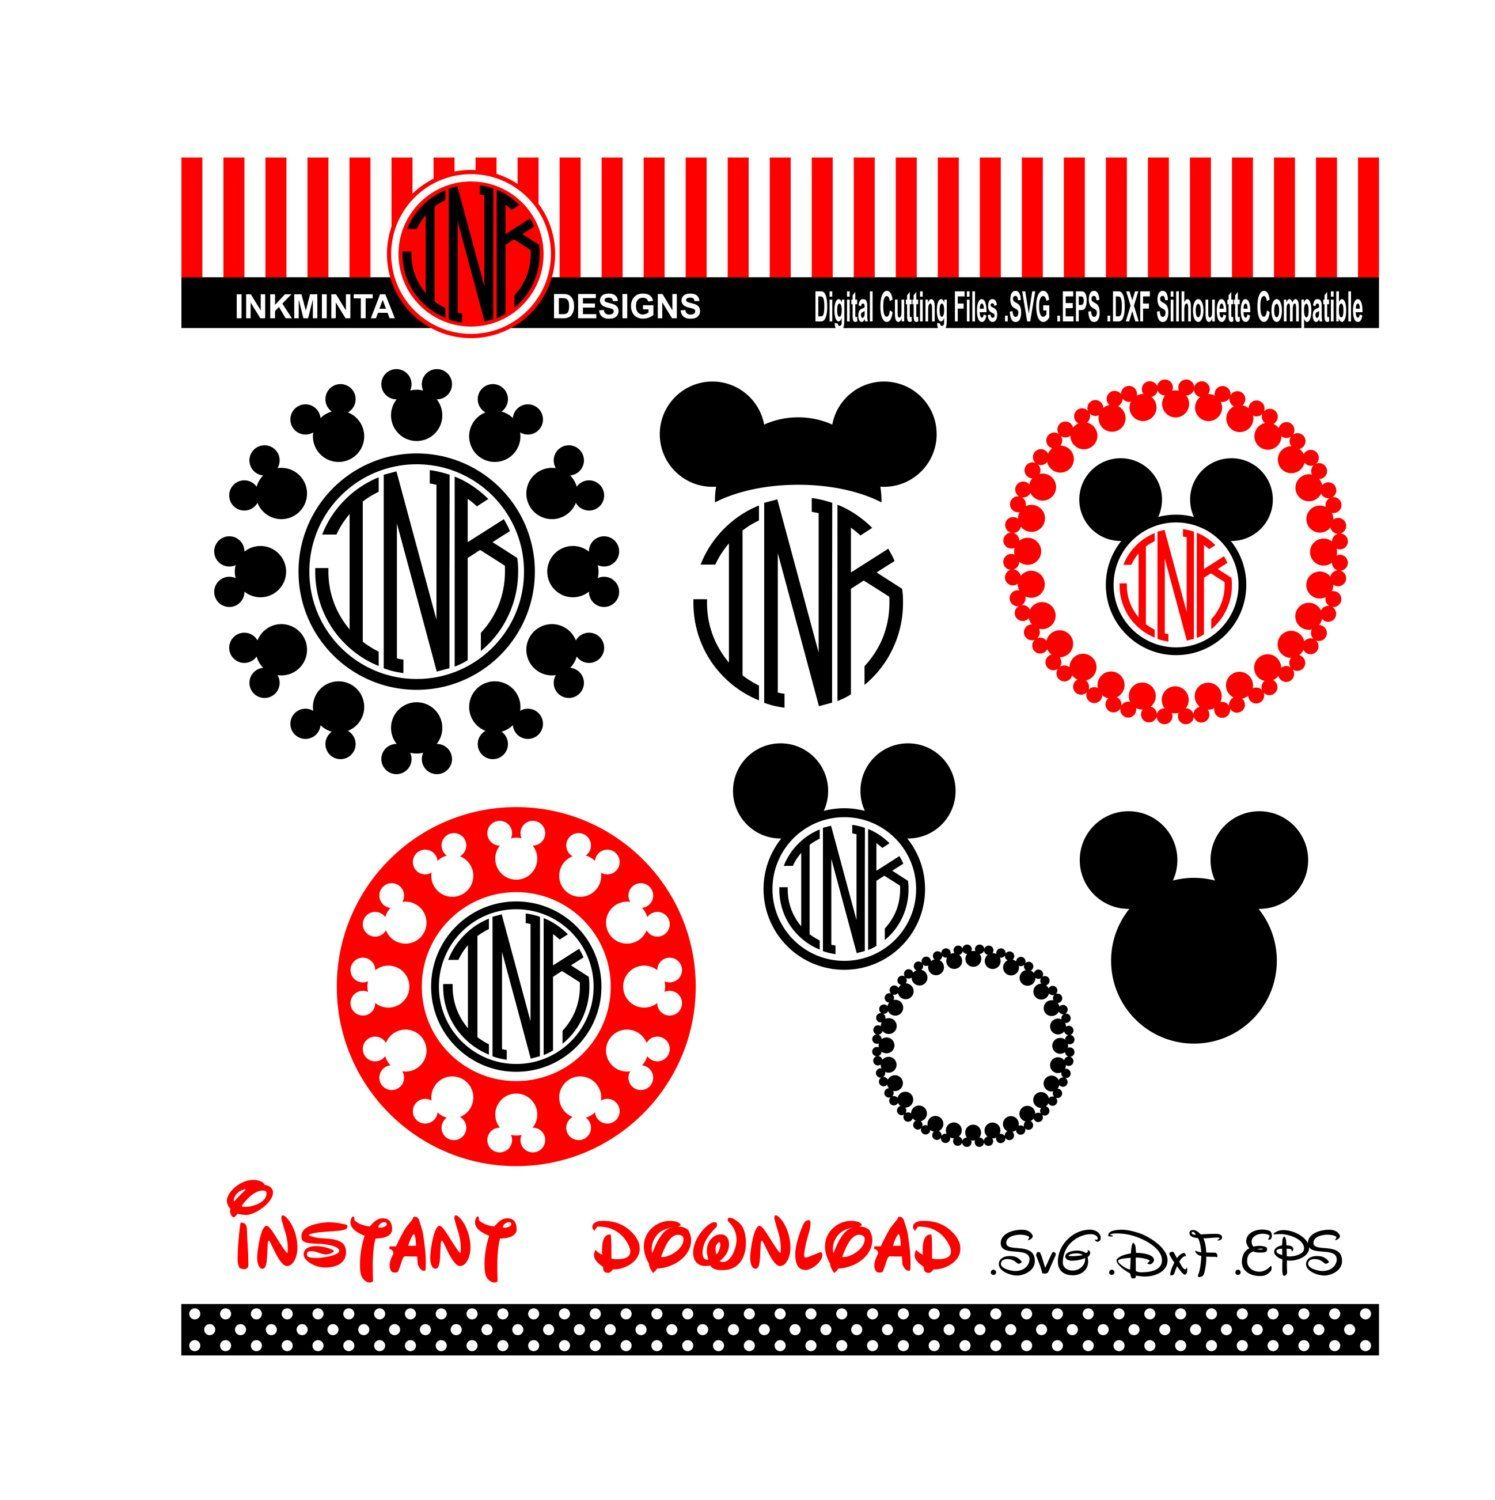 Free Svg Downloads For Cricut Mickey mouse monogram, Diy